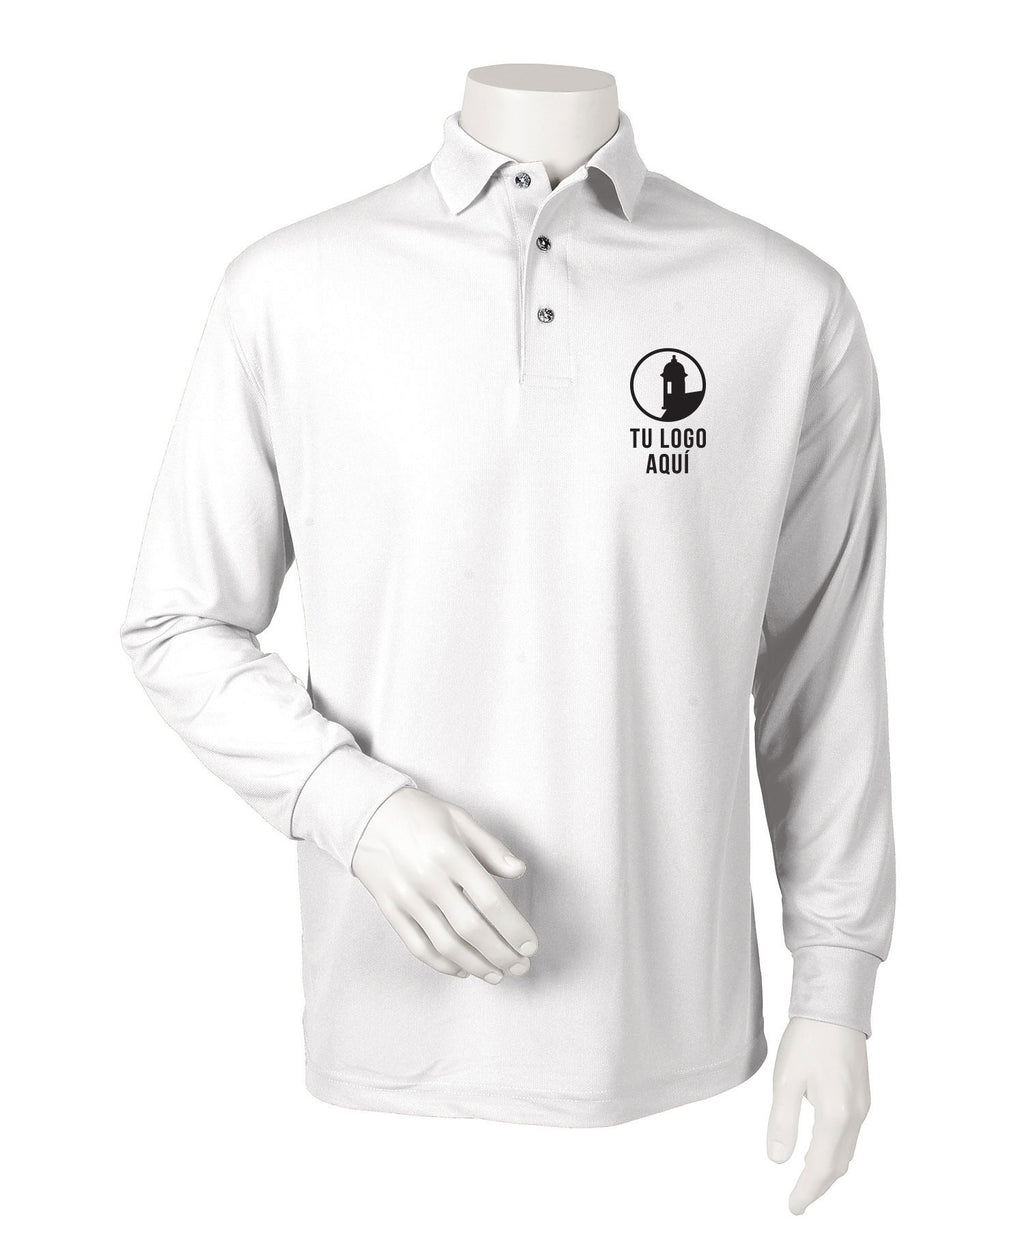 Men's Long Sleeve Mesh Polo